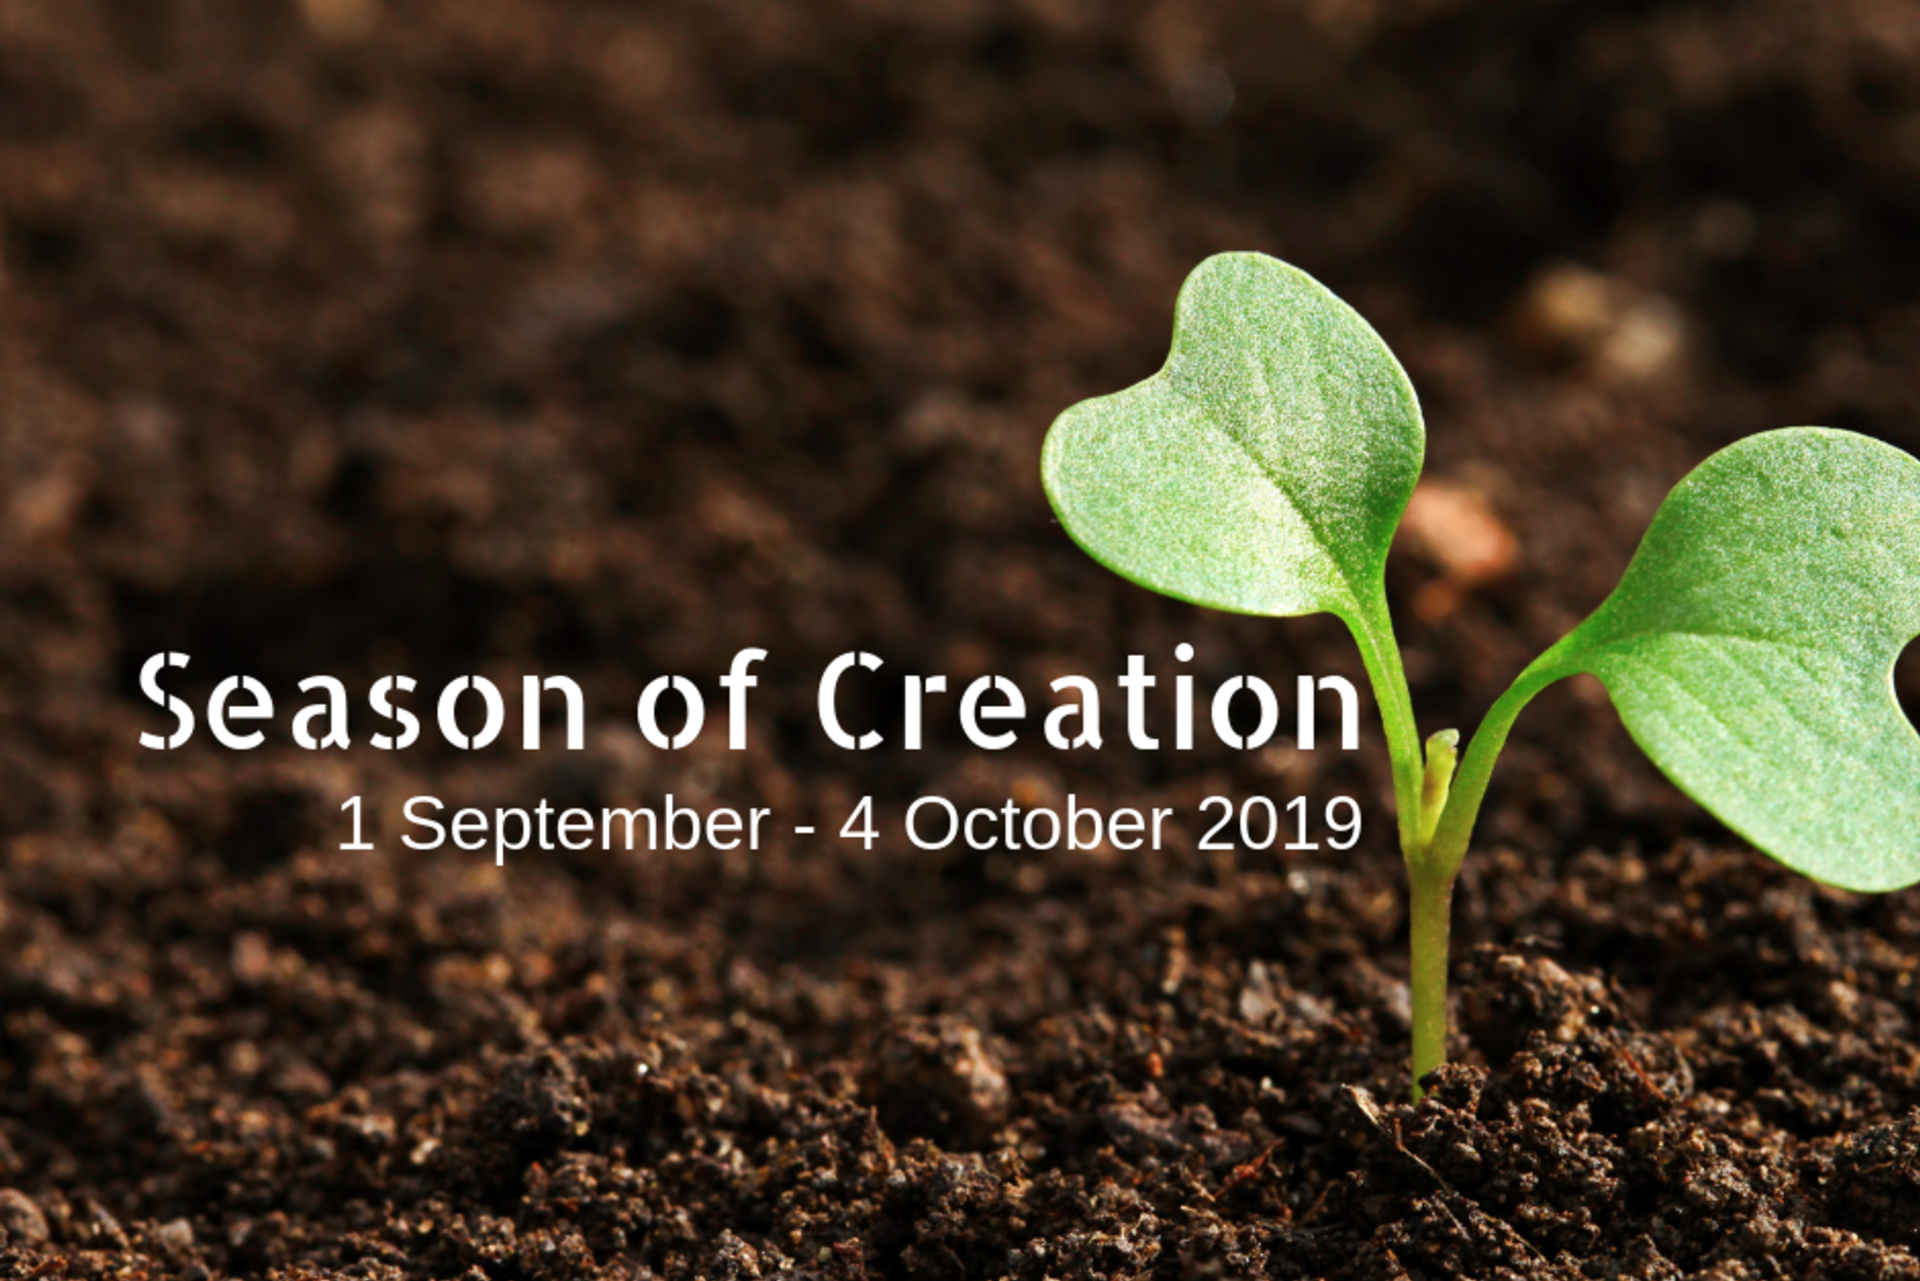 Season of Creation 2019